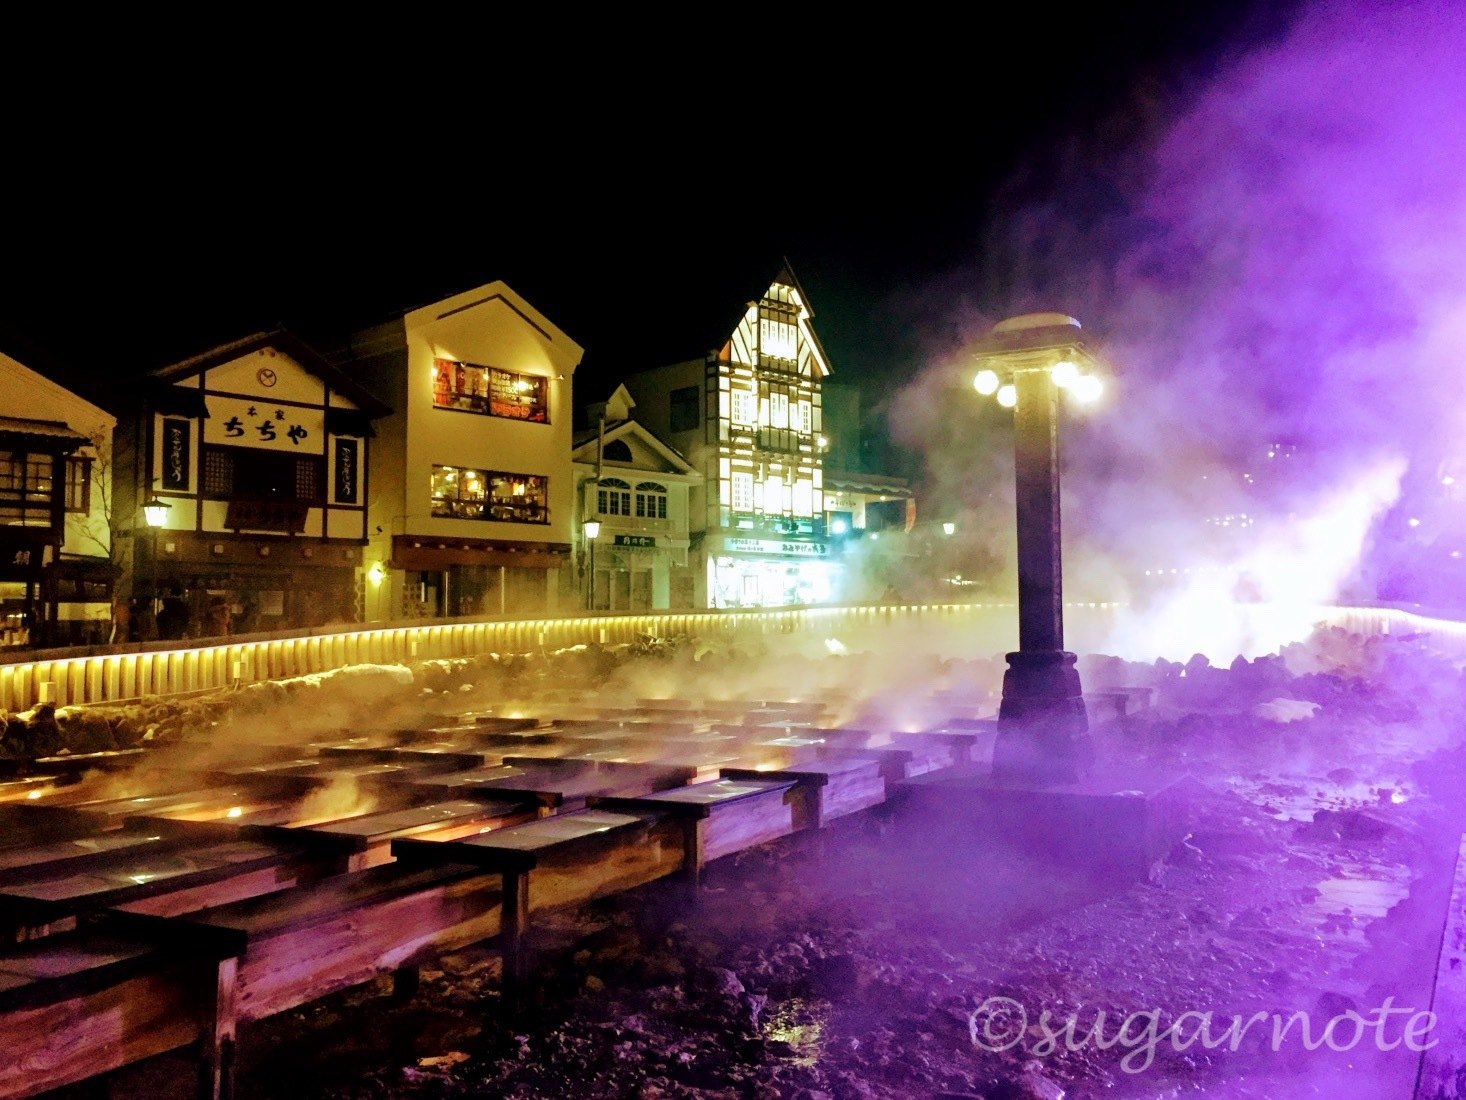 草津温泉, 湯畑, 夜景, Kusatsu-Onsen, Yubatake, Hot Water Field, Night View